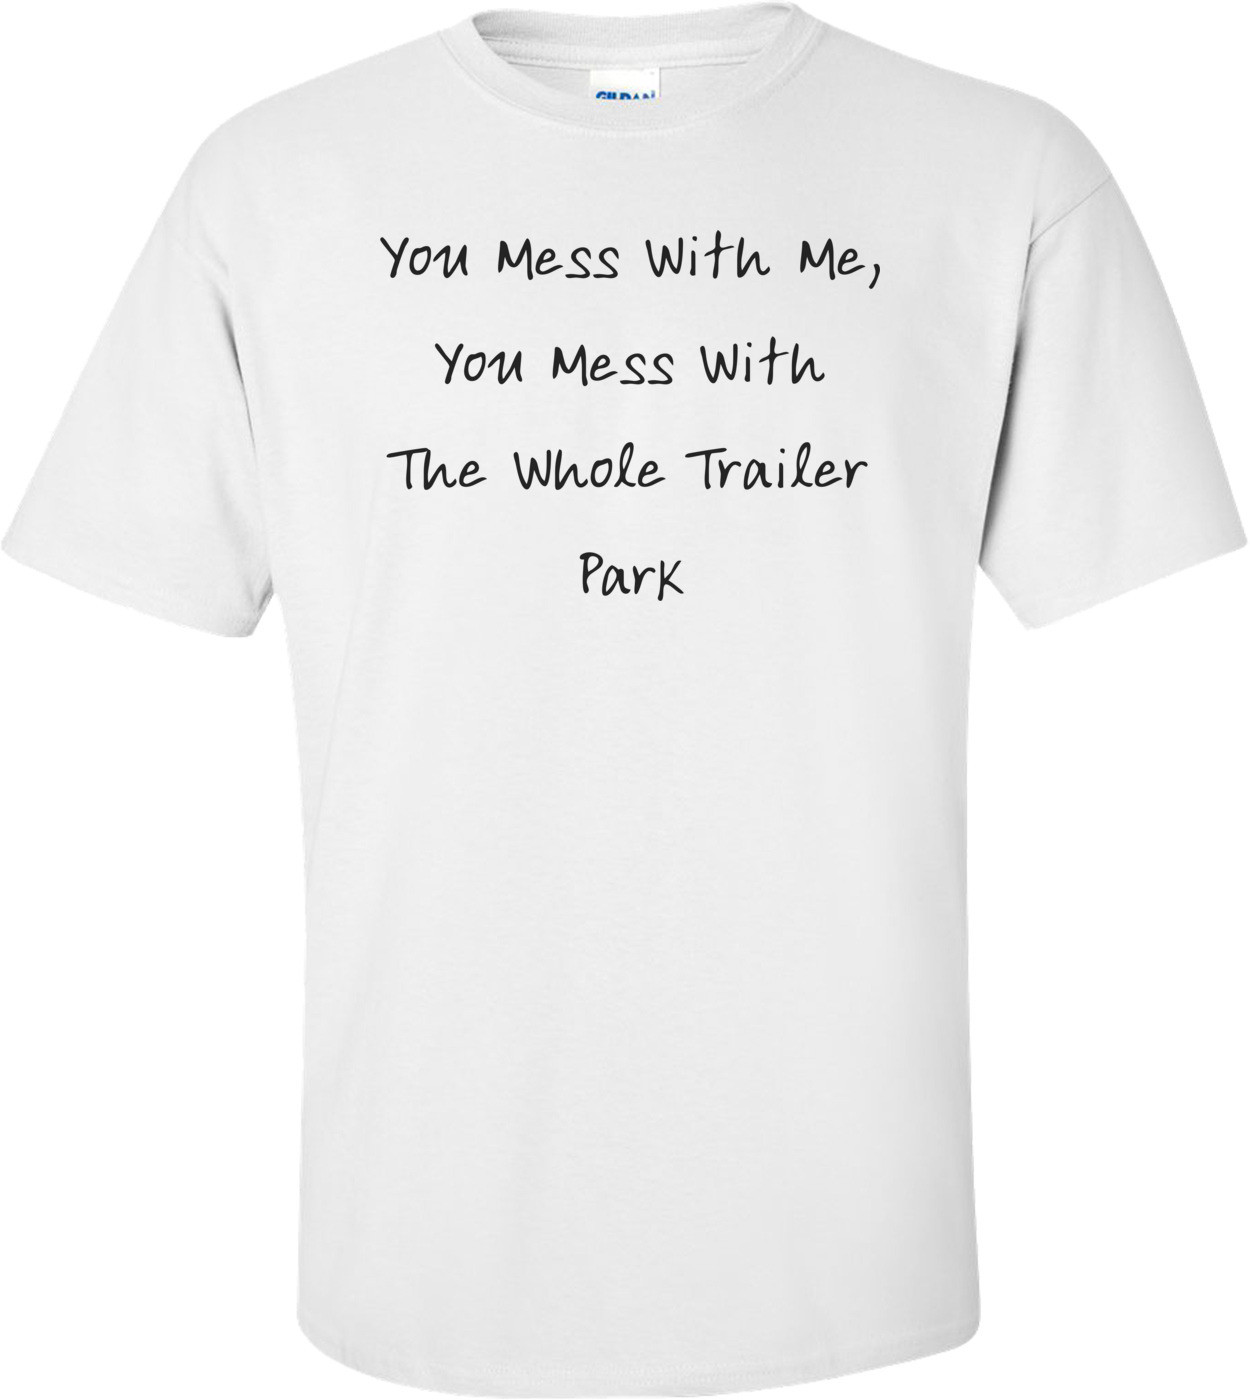 You Mess With Me, You Mess With The Whole Trailer Park T-Shirt